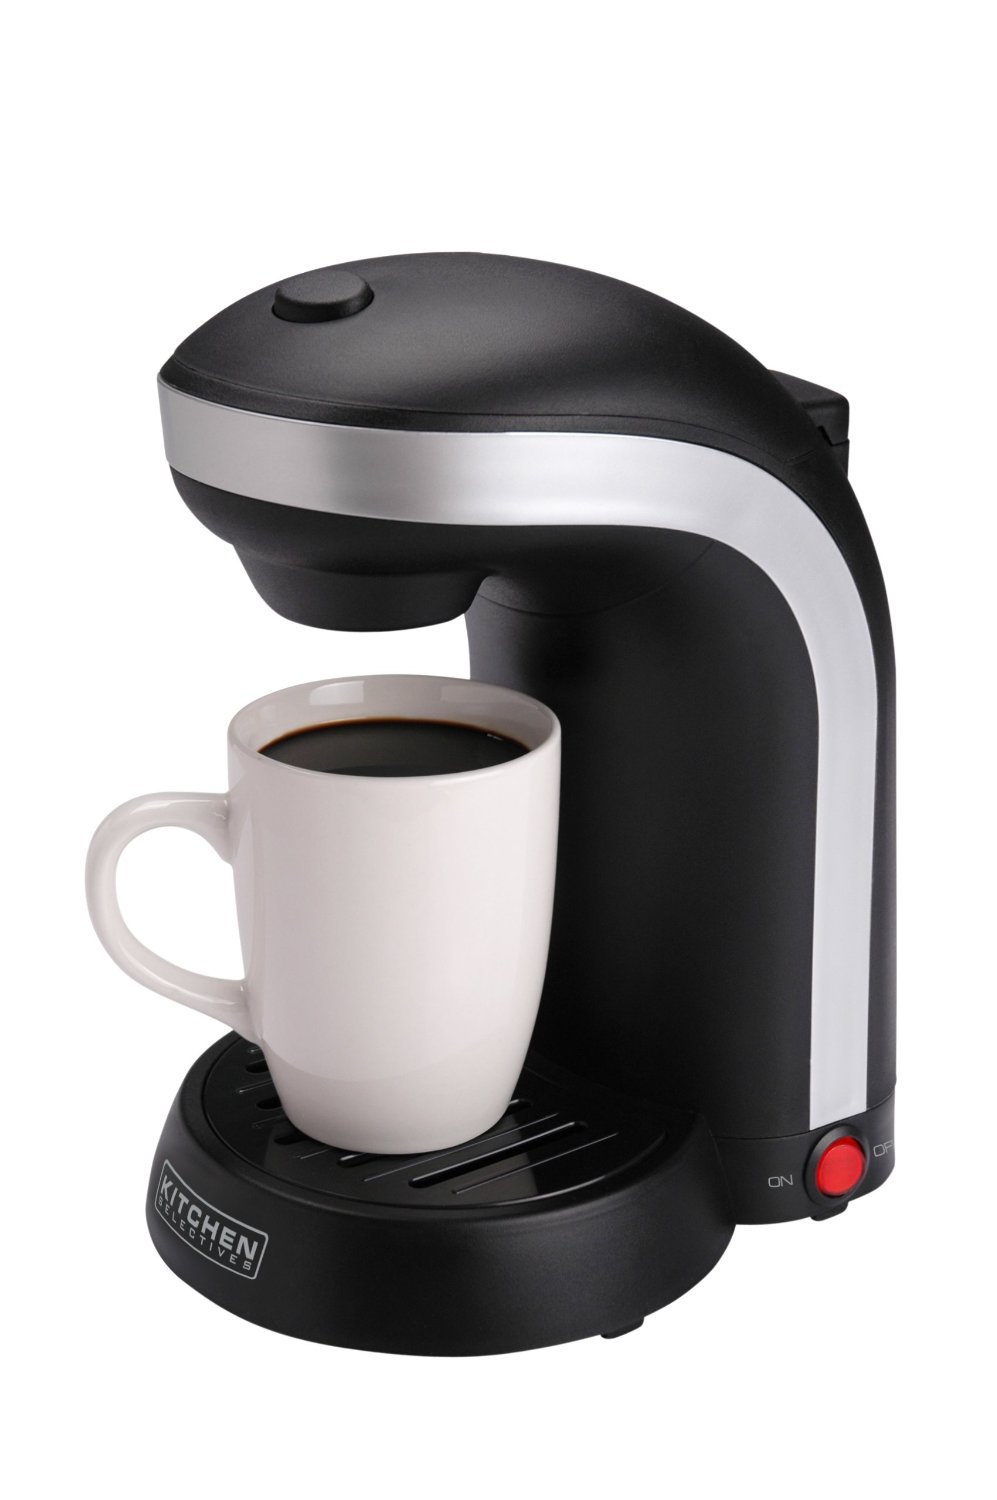 Coffee Maker For One : Best Organic Single Origin Coffee Bean Black Single Cup Coffee Maker